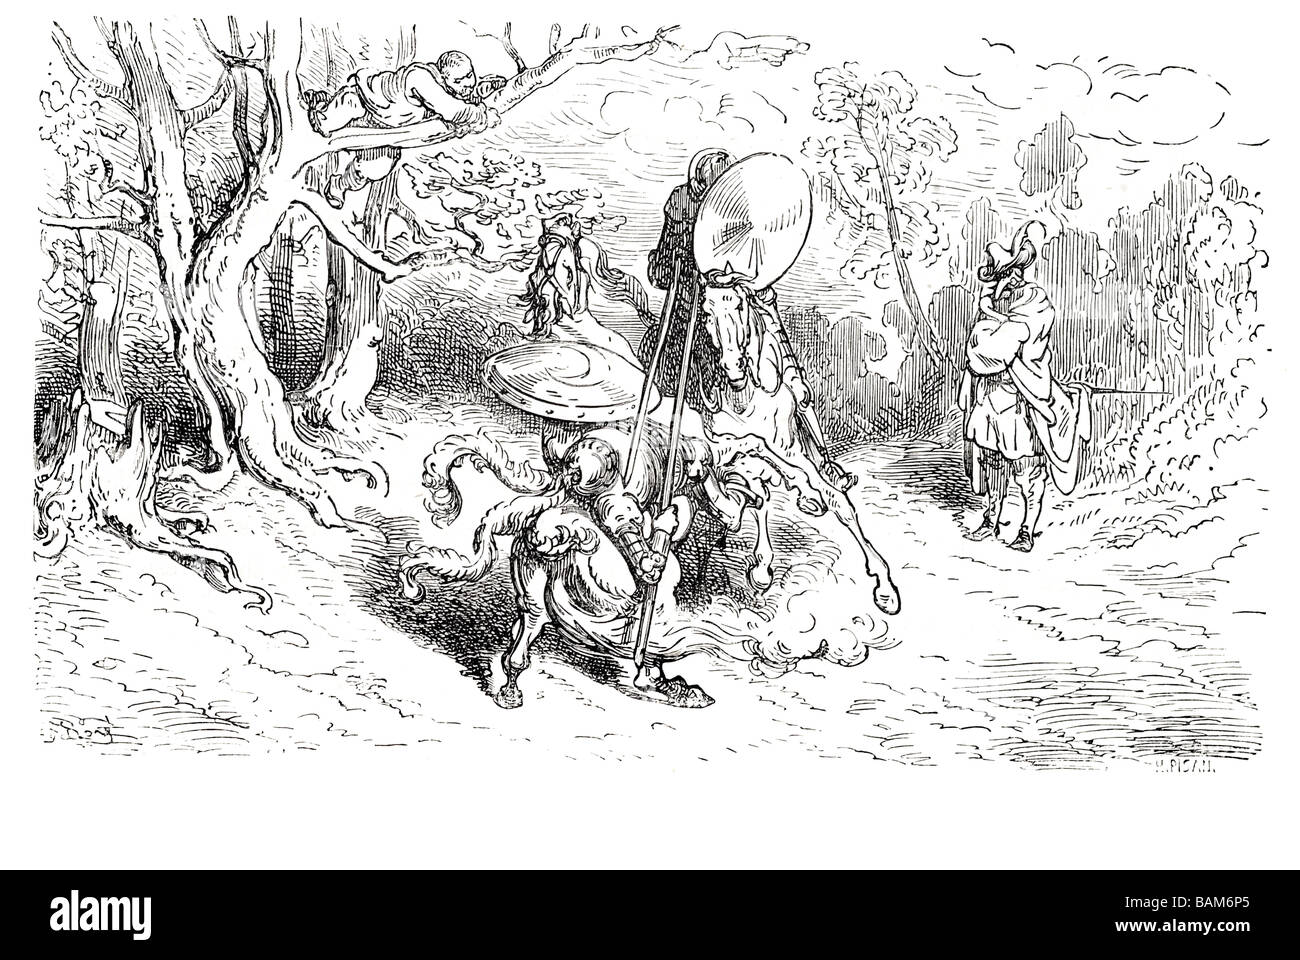 chapter XIV a continuation of the adventure of the knight of the wood 14 fourteen Don quixote spanish novel Alonso Stock Photo